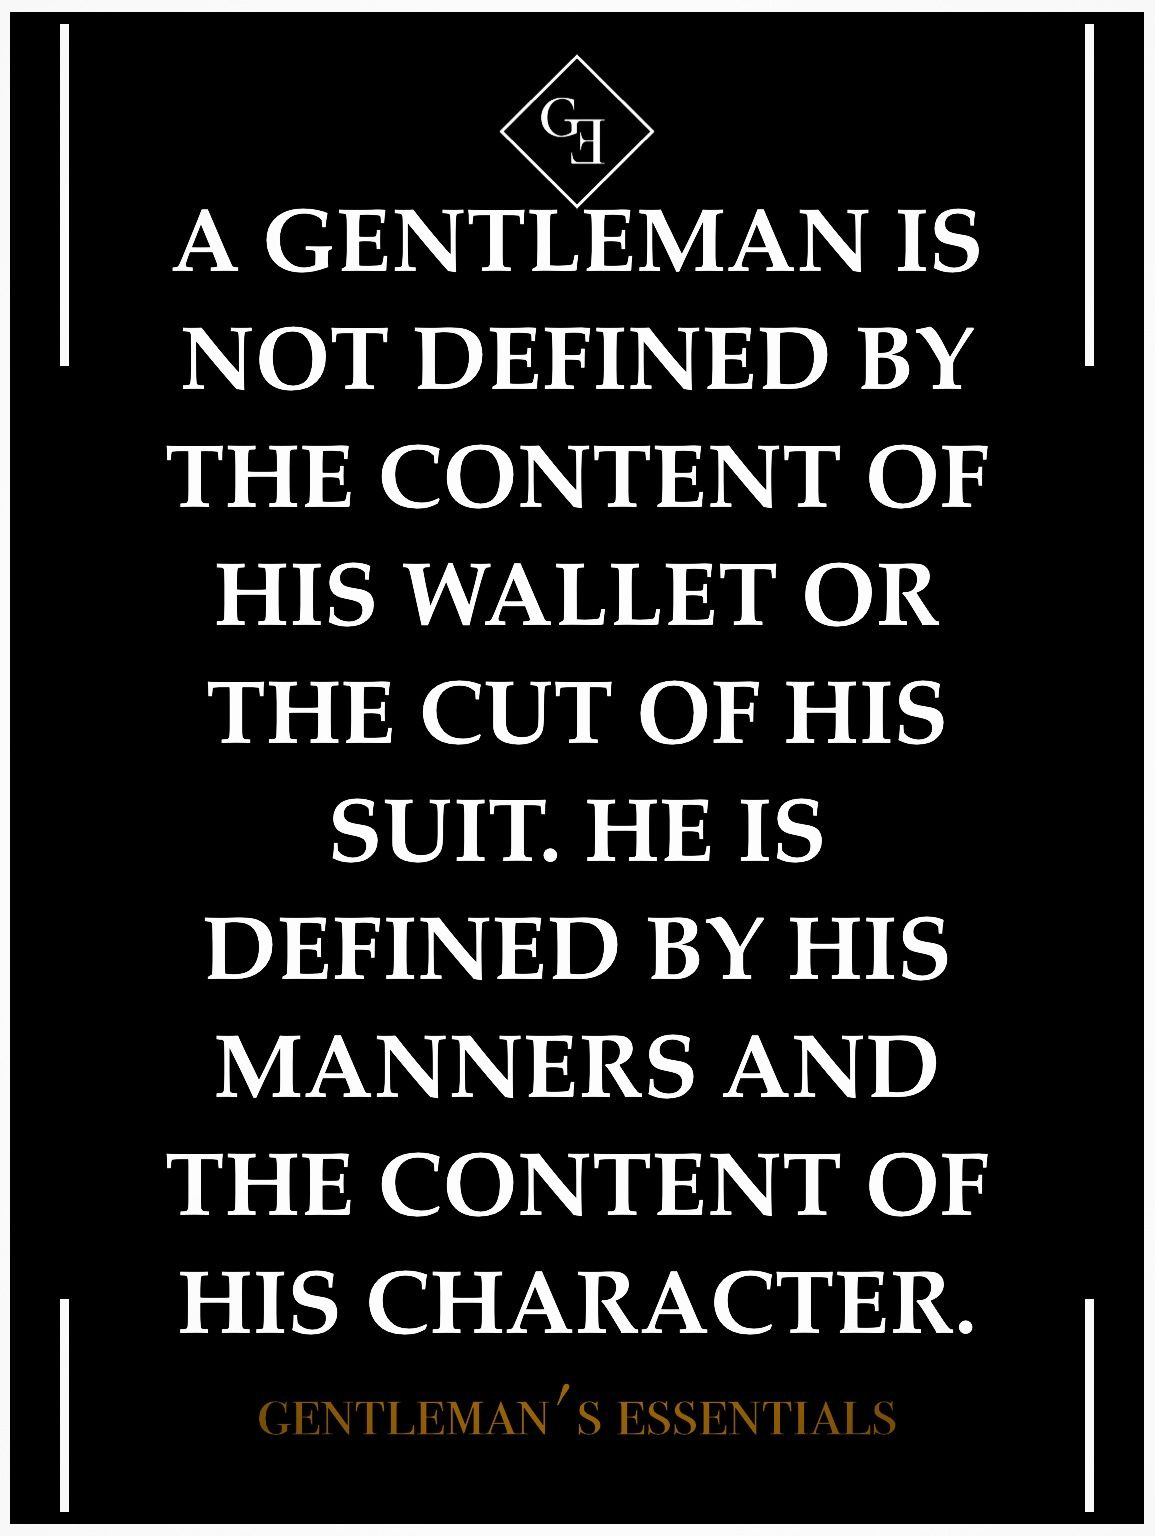 Definition of true chivalry according woman